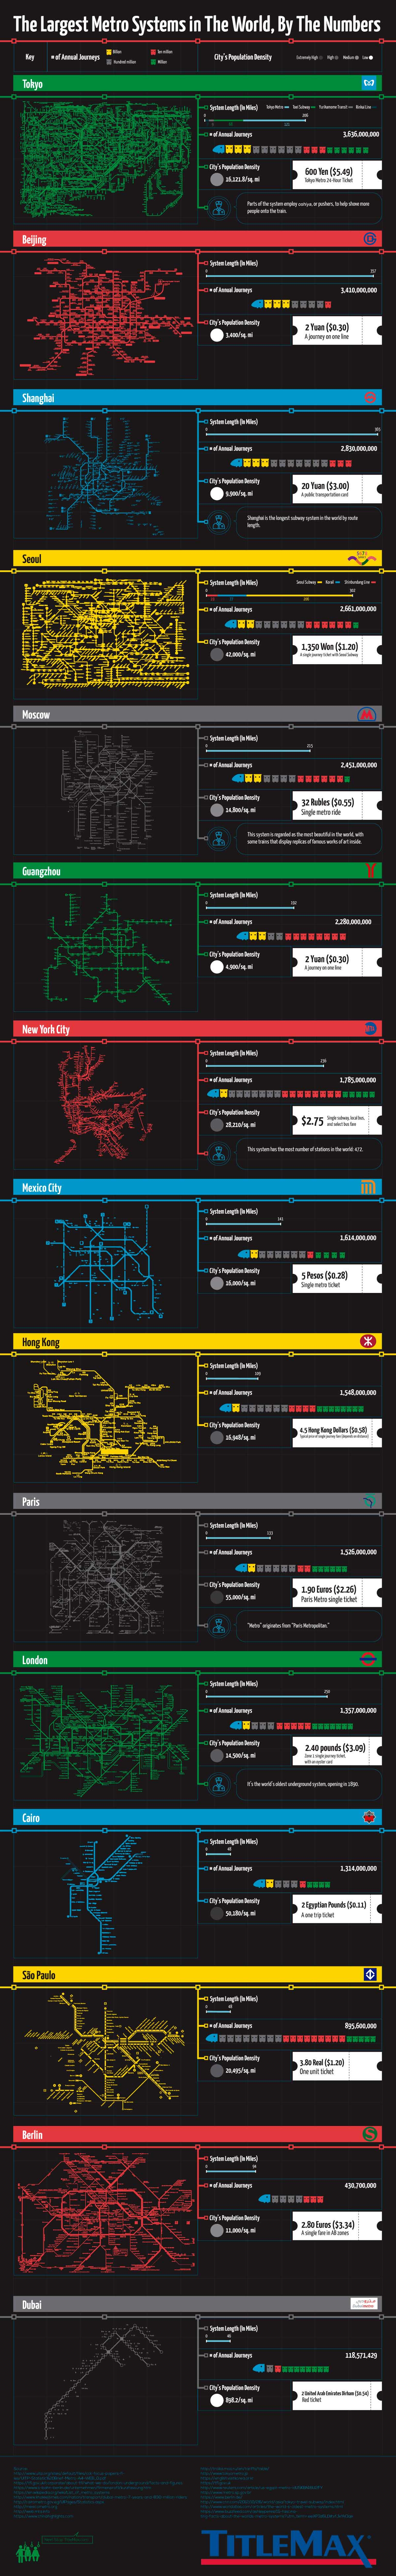 The Largest Metro Systems Worldwide